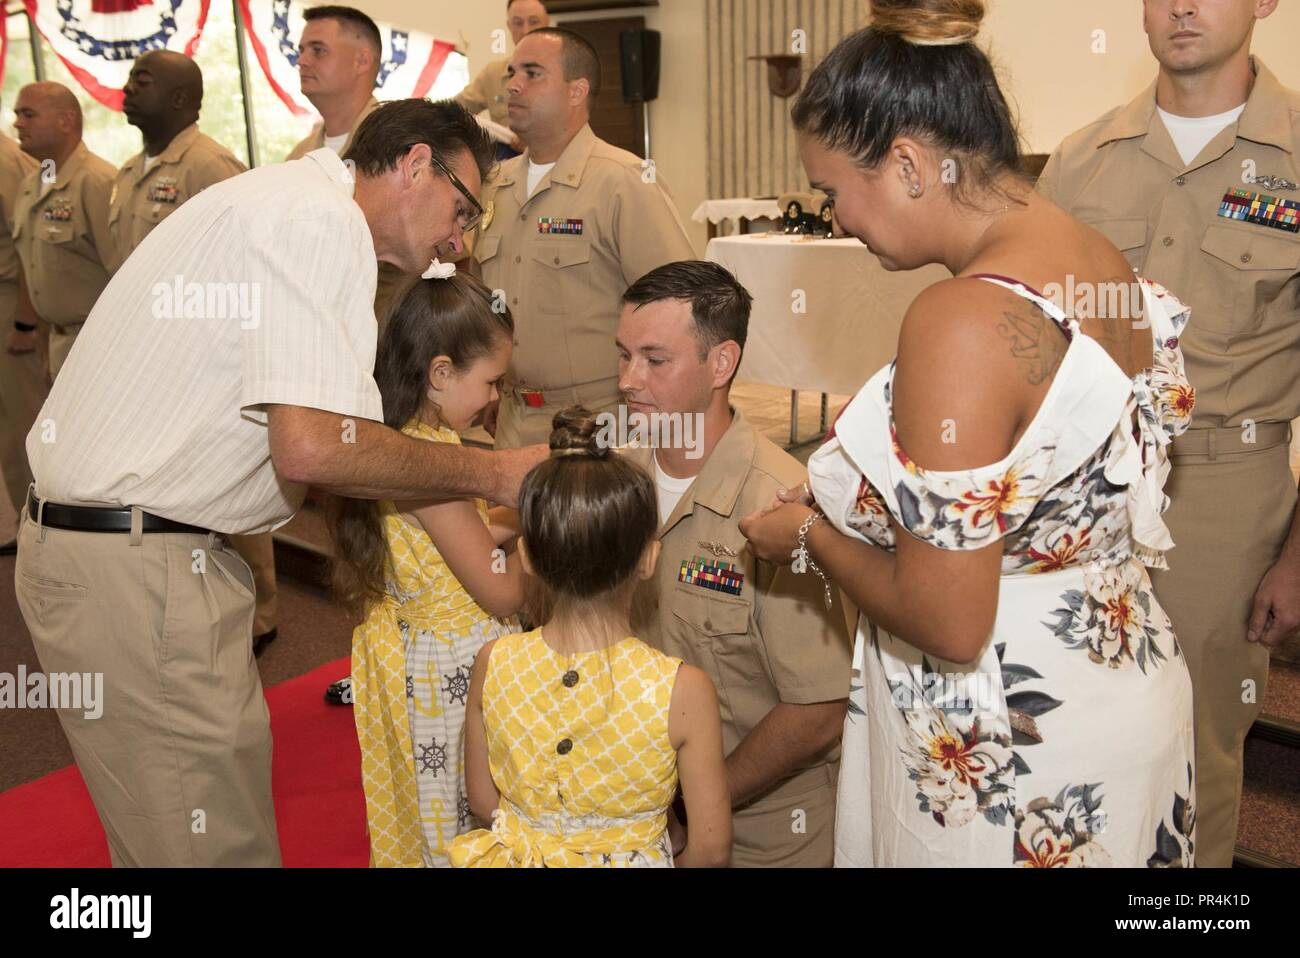 KINGS BAY, Georgia (Sept. 14, 2018) Chief Culinary Specialist (Submarines) Ryan Singleton is pinned with his anchors by his family during Naval Submarine Base Kings Bay's 2018 chief petty officer pinning ceremony.  The base is home to six of the Ohio-class ballistic-missile submarines that make up the most survivable leg of the nuclear missile triad. - Stock Image